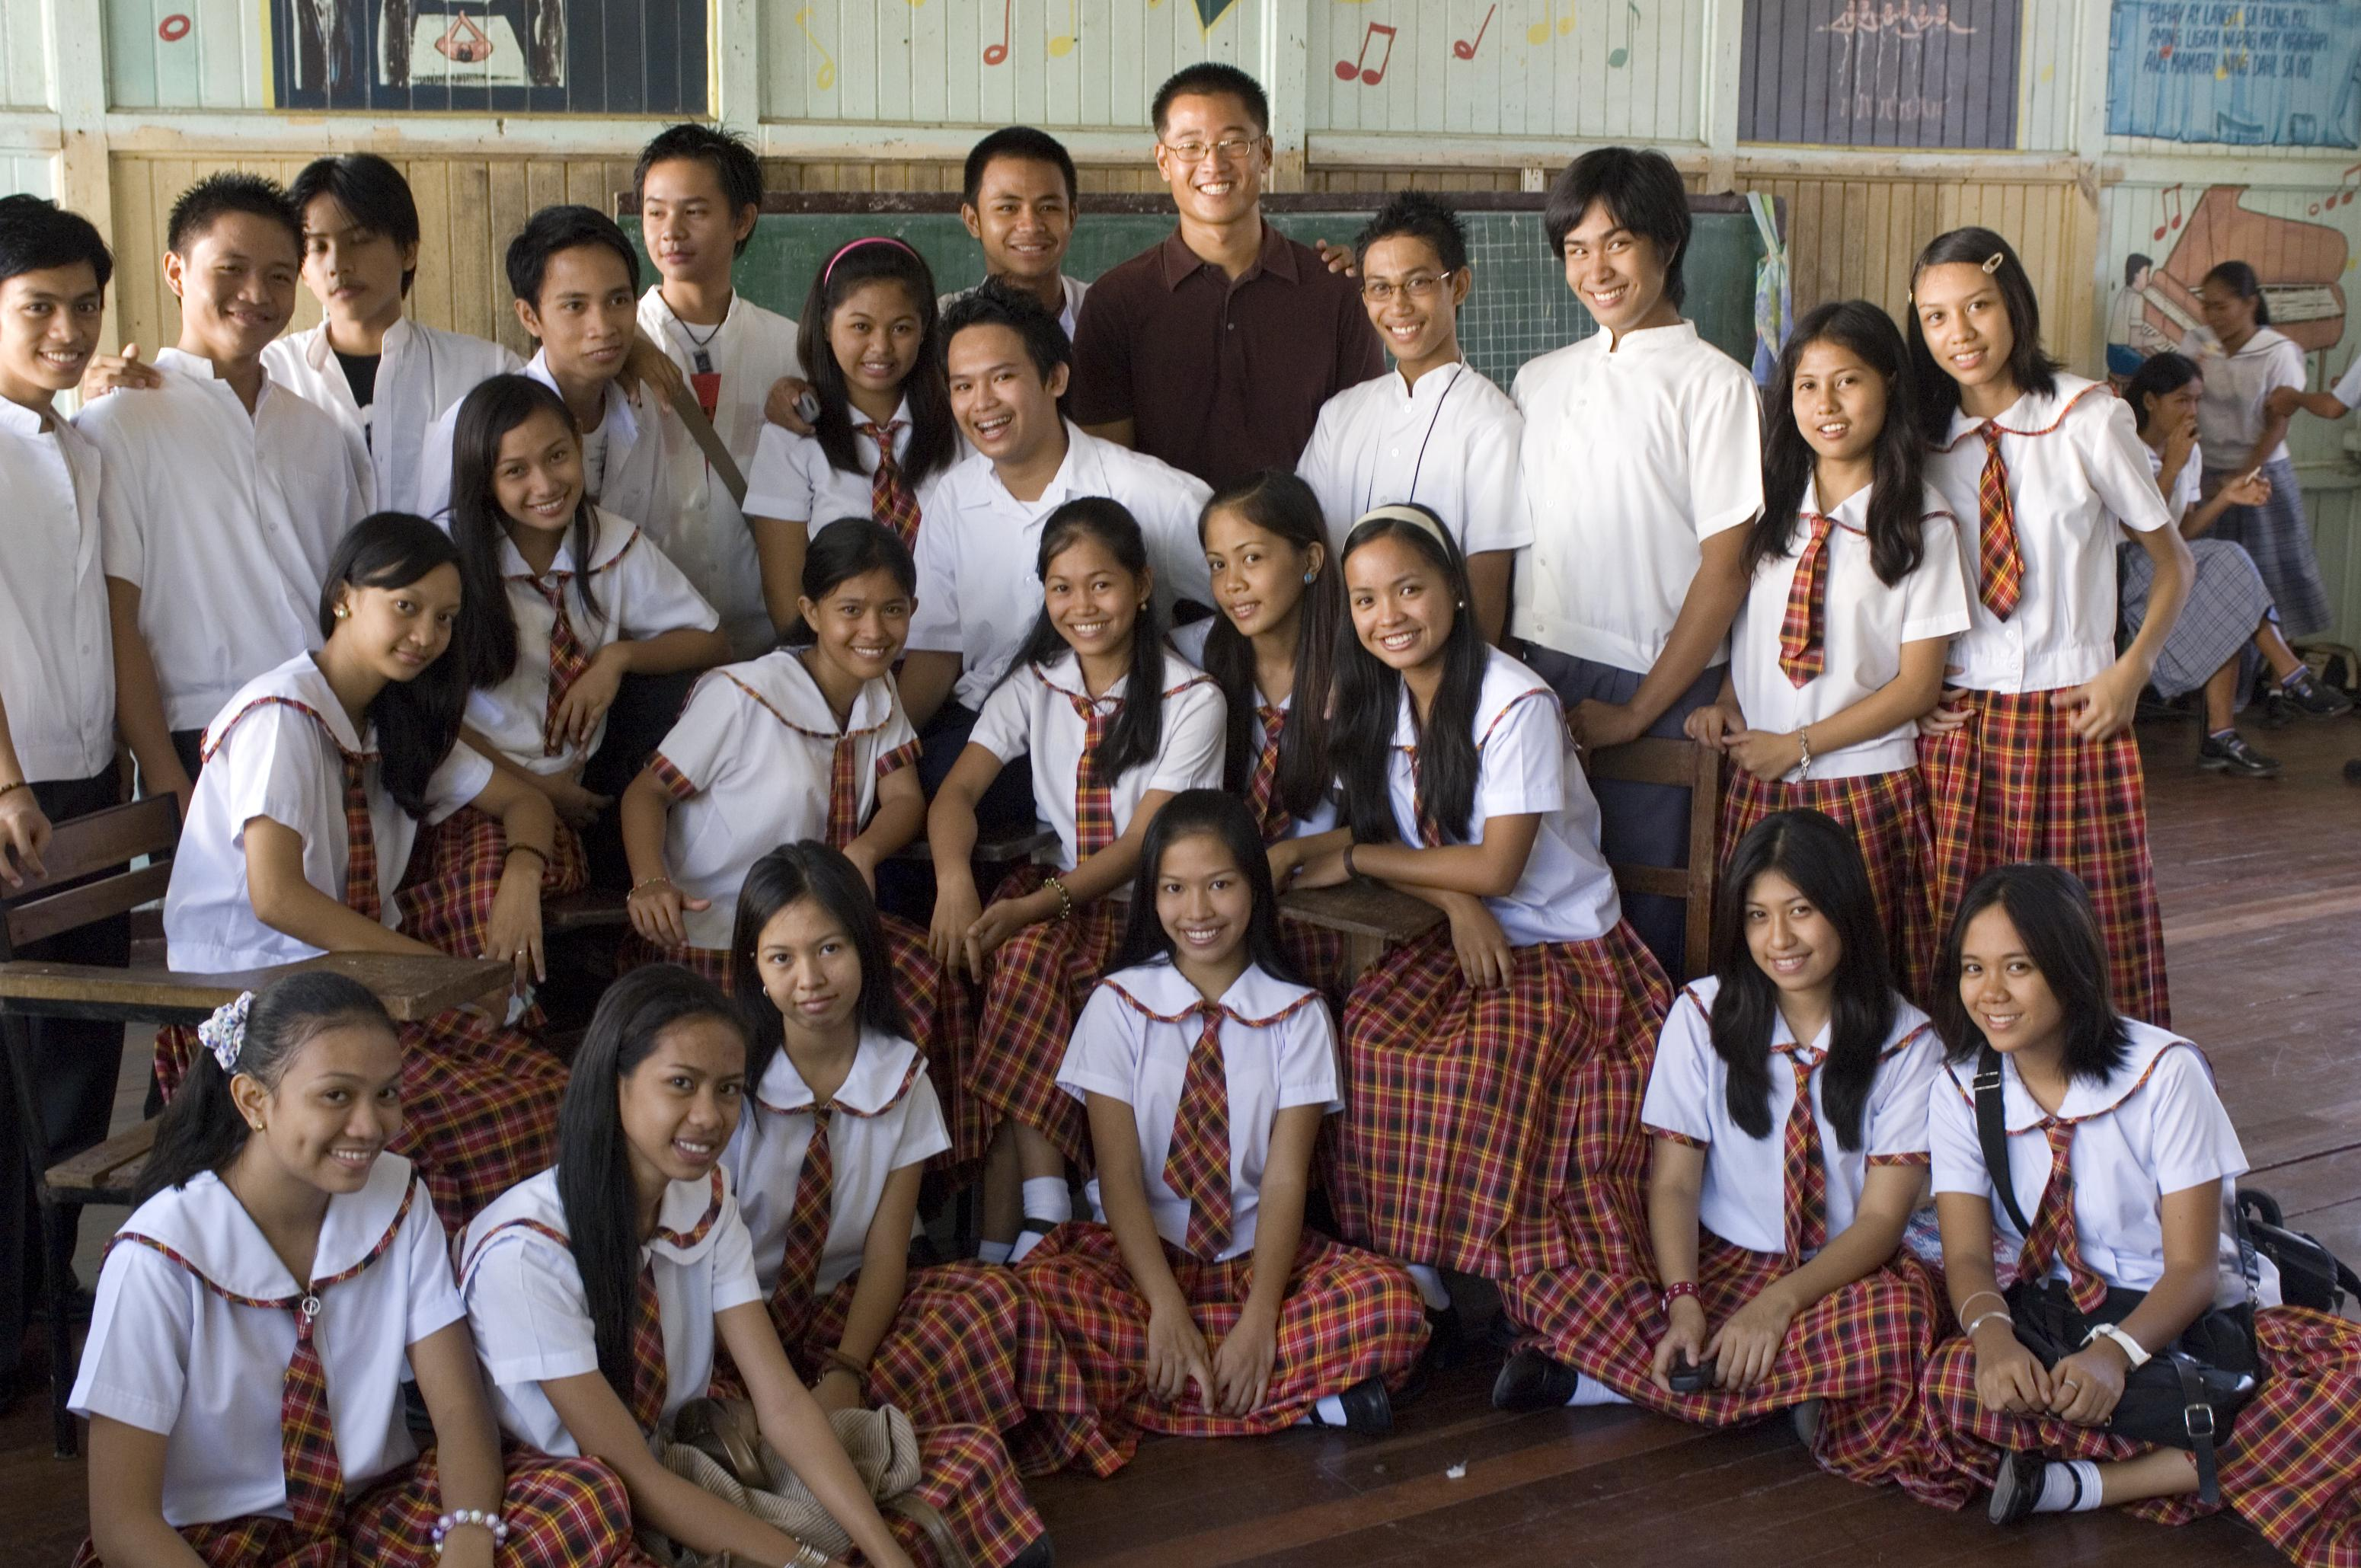 What philippine pretty middle school girls talented idea